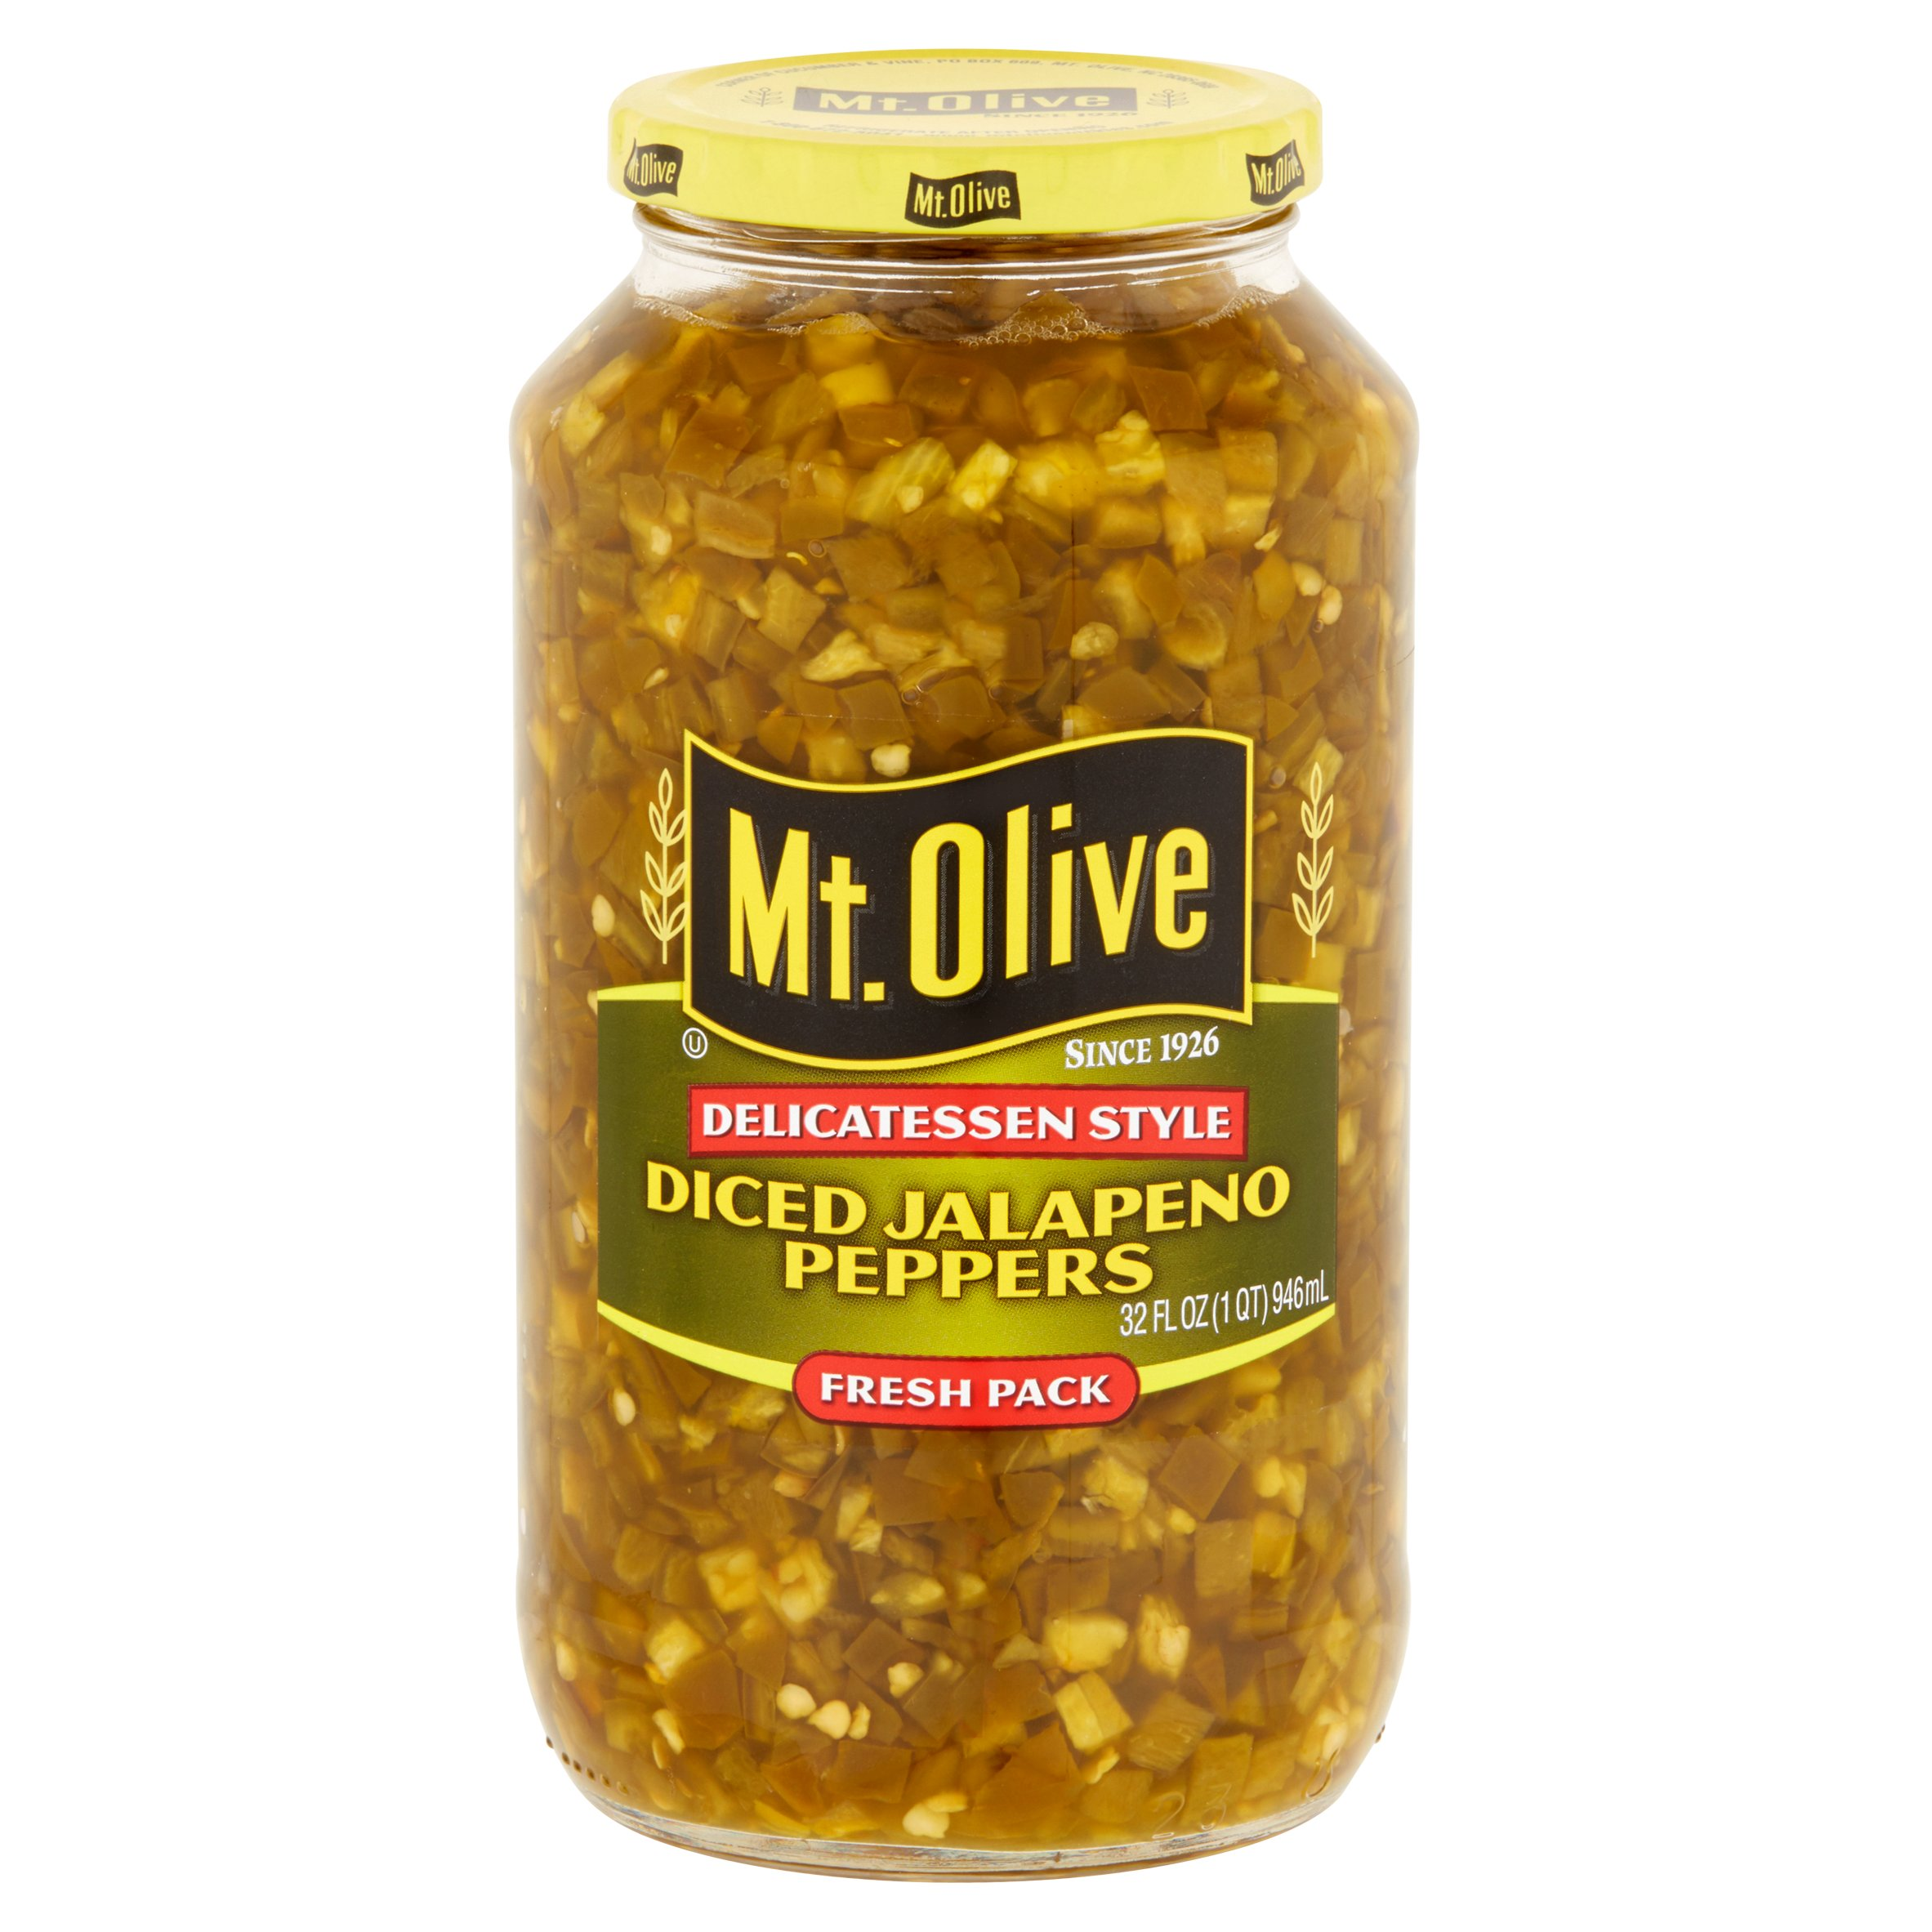 (6 Pack) Mt. Olive Diced Jalapeño Peppers, 32 Oz